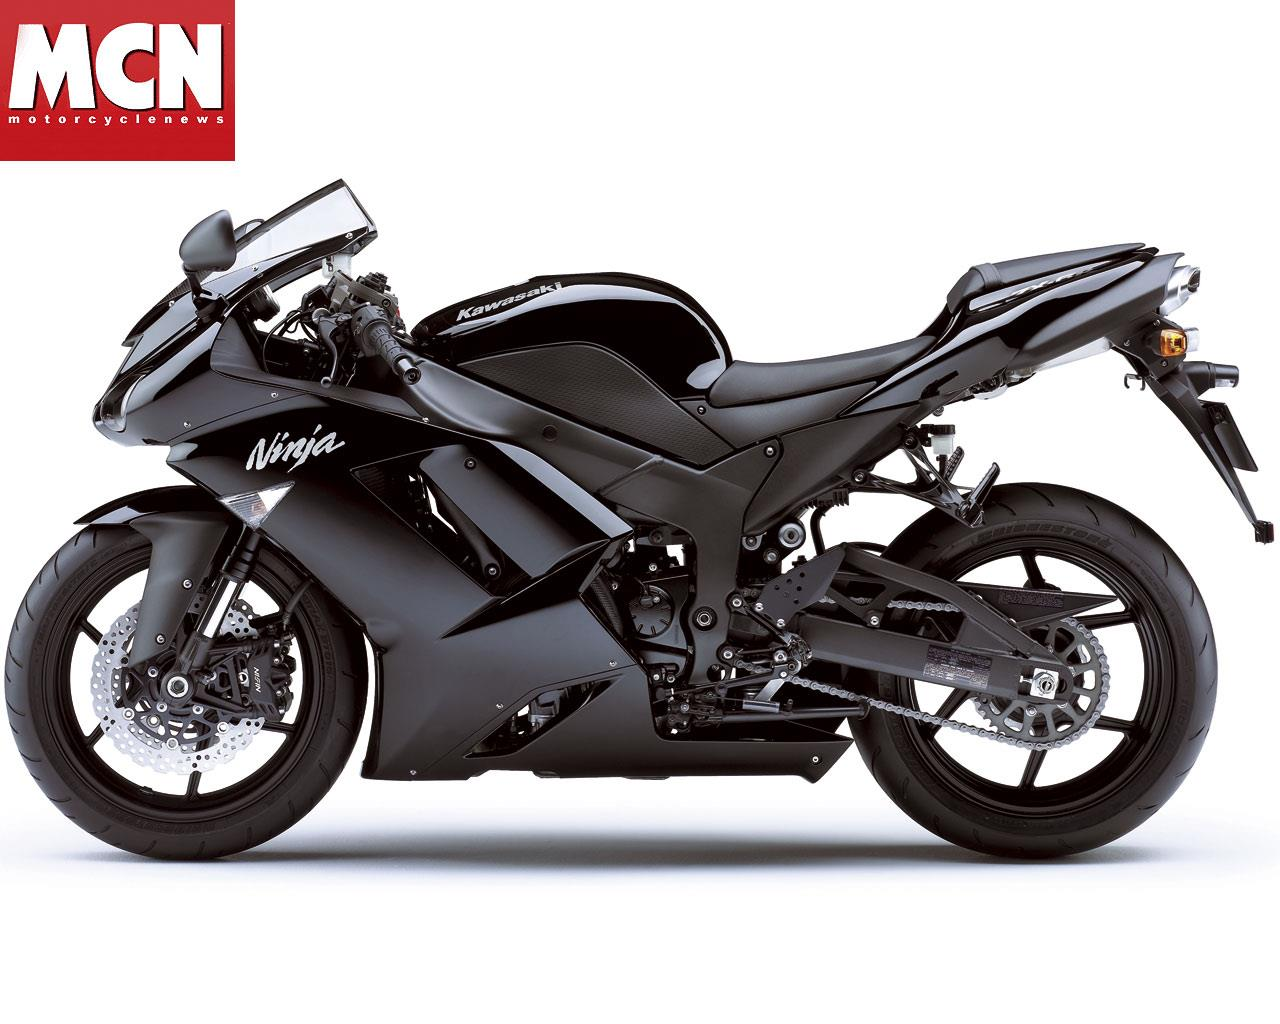 Colour changes for the 2008 Kawasaki ZX-6R motorcycle | MCN